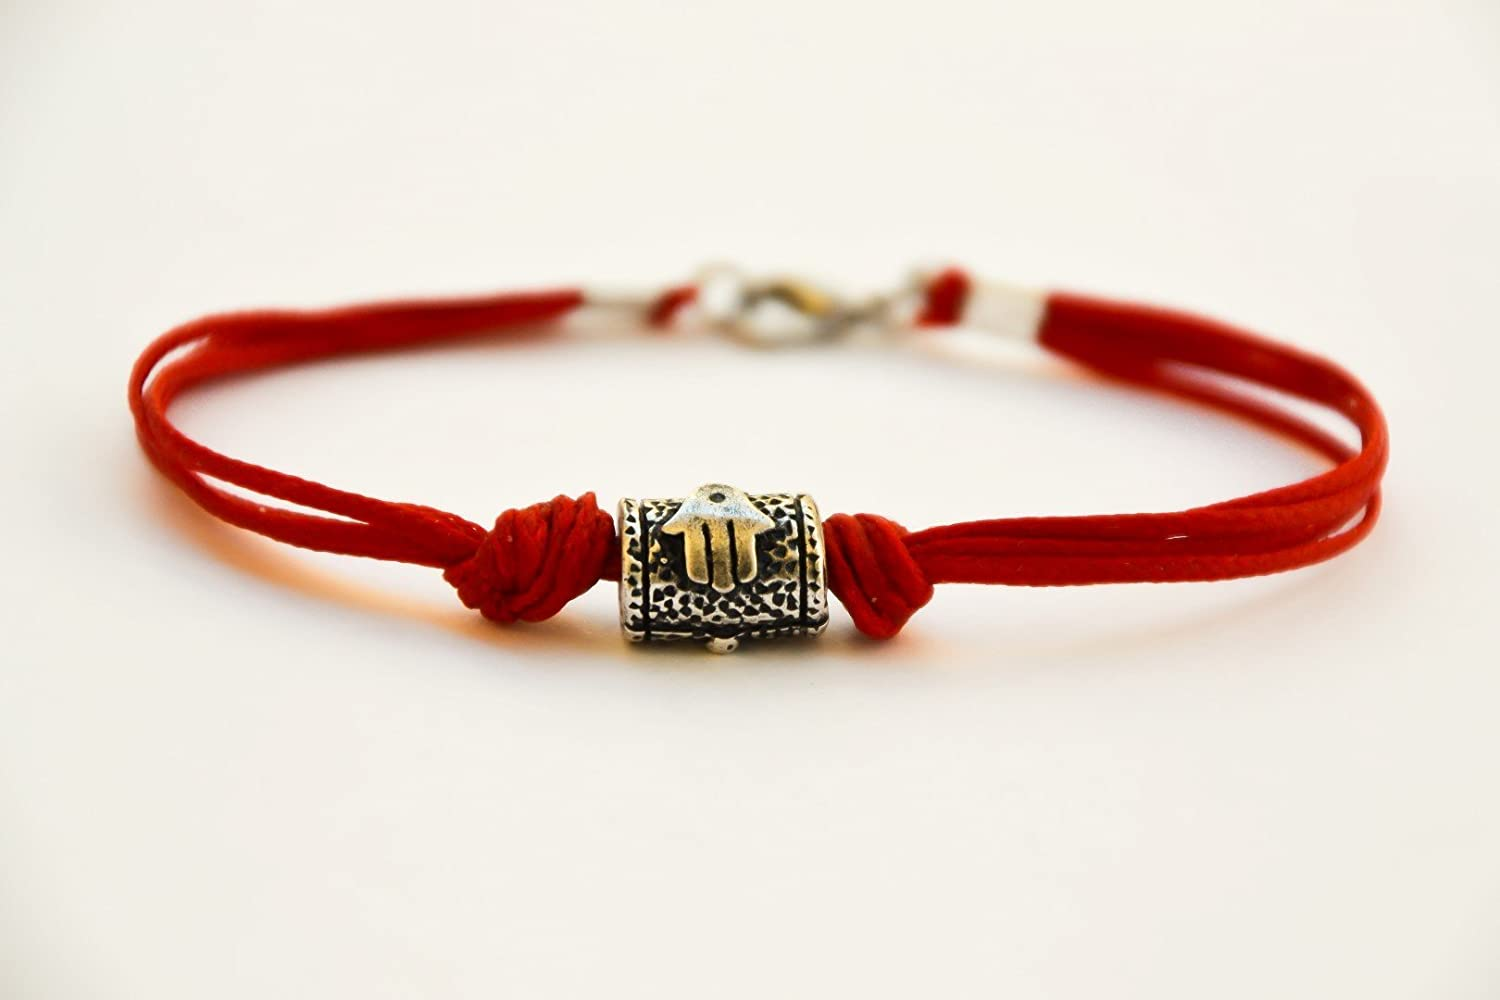 Hamsa bracelet for men, men's bracelet with a silver tube bead charm and a red cord, against the evil eye, red bracelet for men, lucky charm